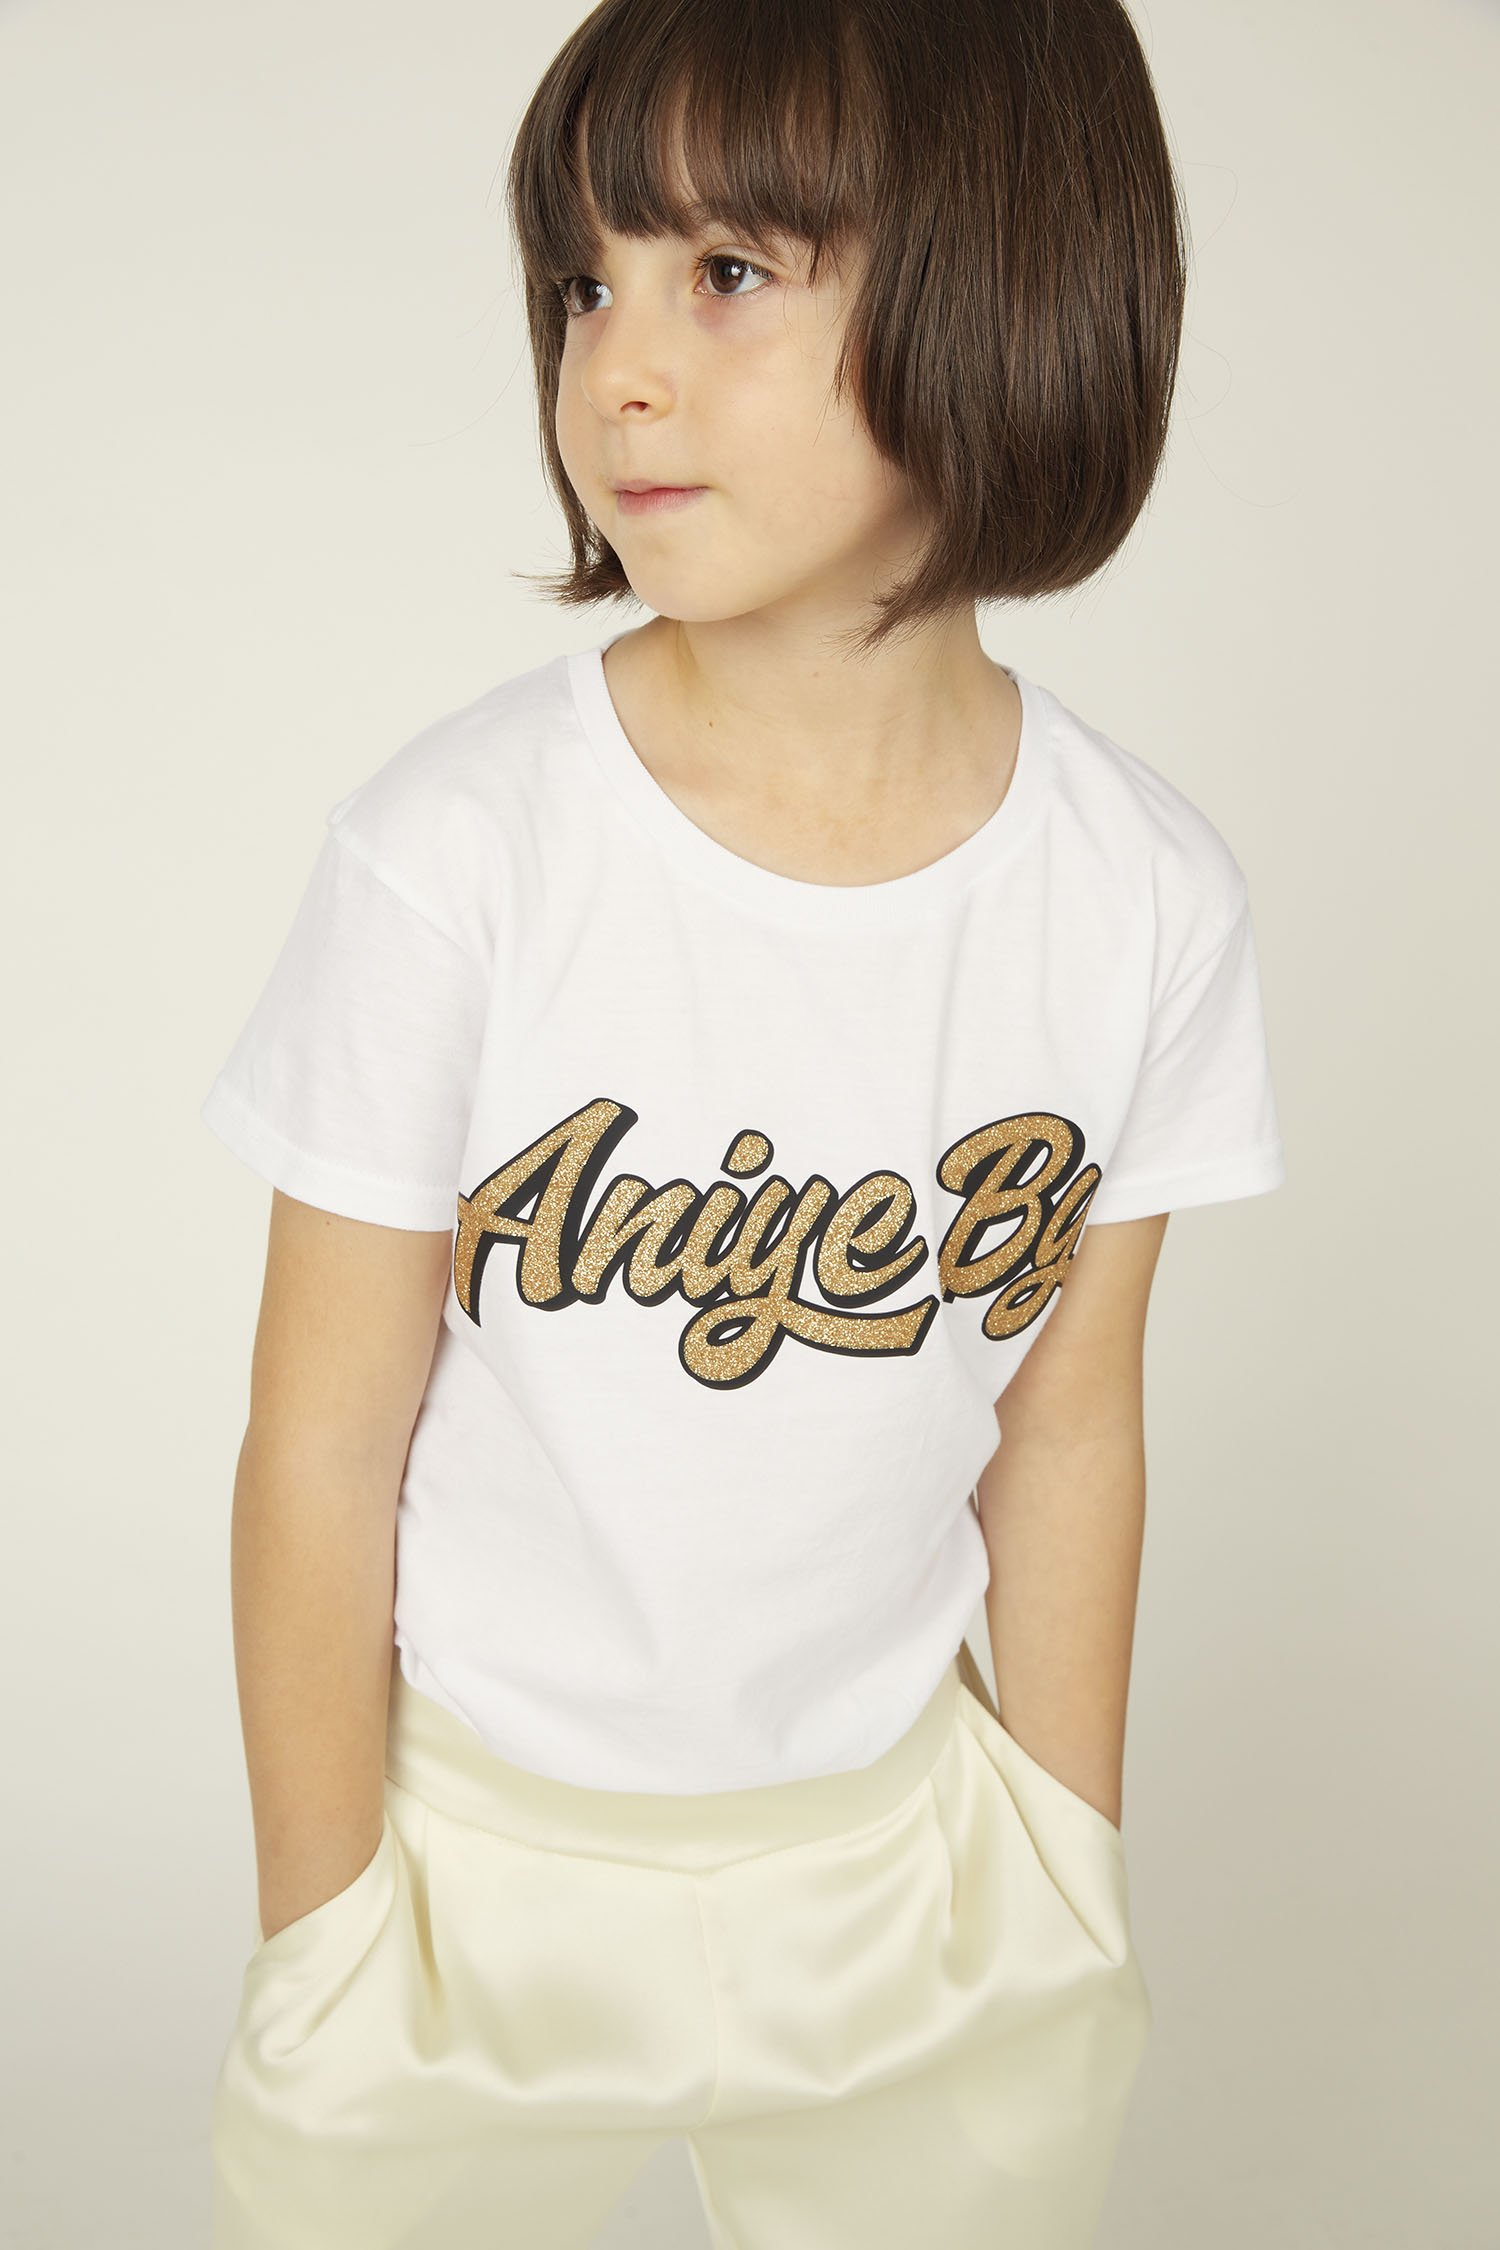 T-SHIRT ANIYE MATY - GIRL